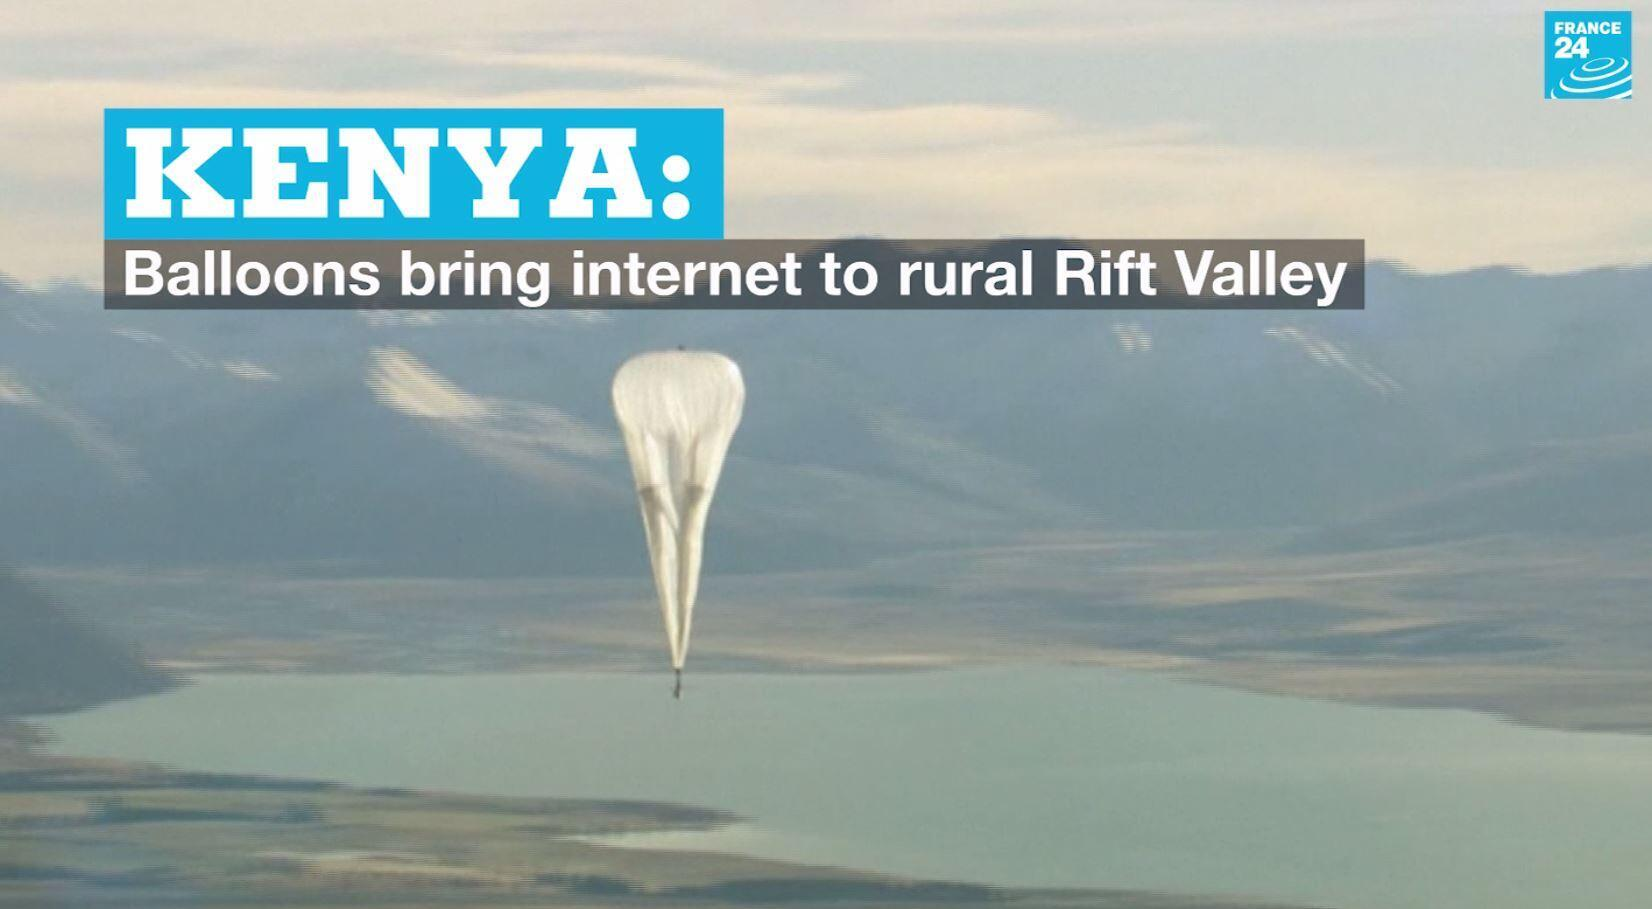 A Loon internet balloon being tested at an unknown location.